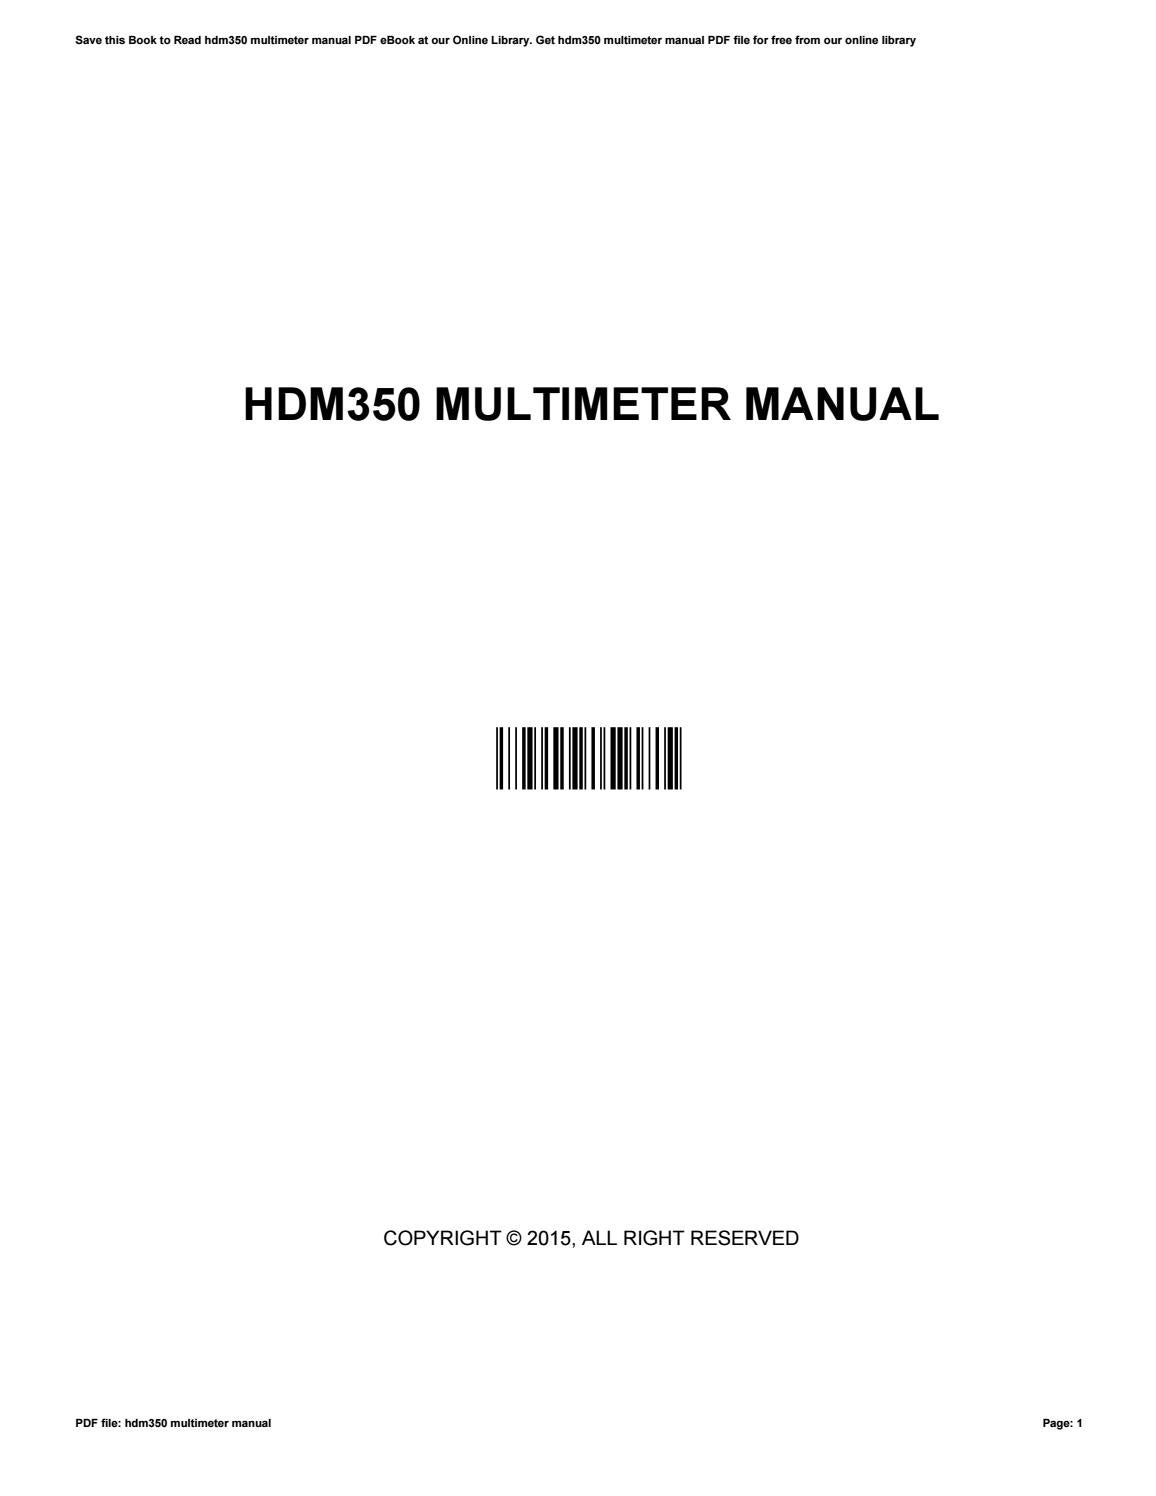 Hdm350 multimeter-manual.